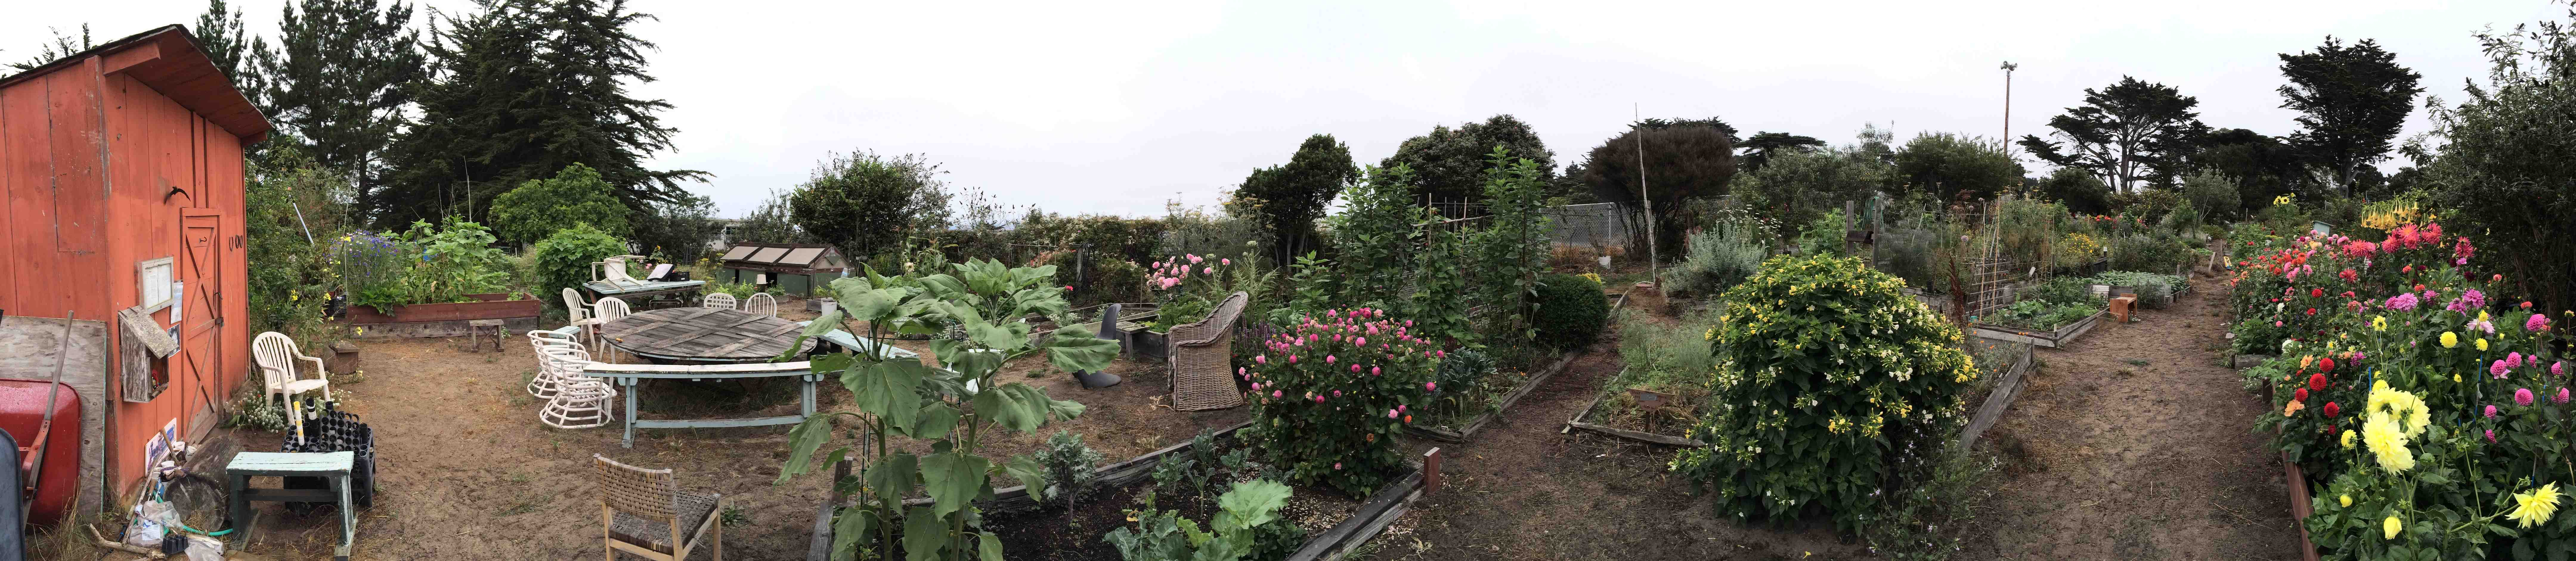 Sunset_Community_Garden_Pano_(Small).jpg